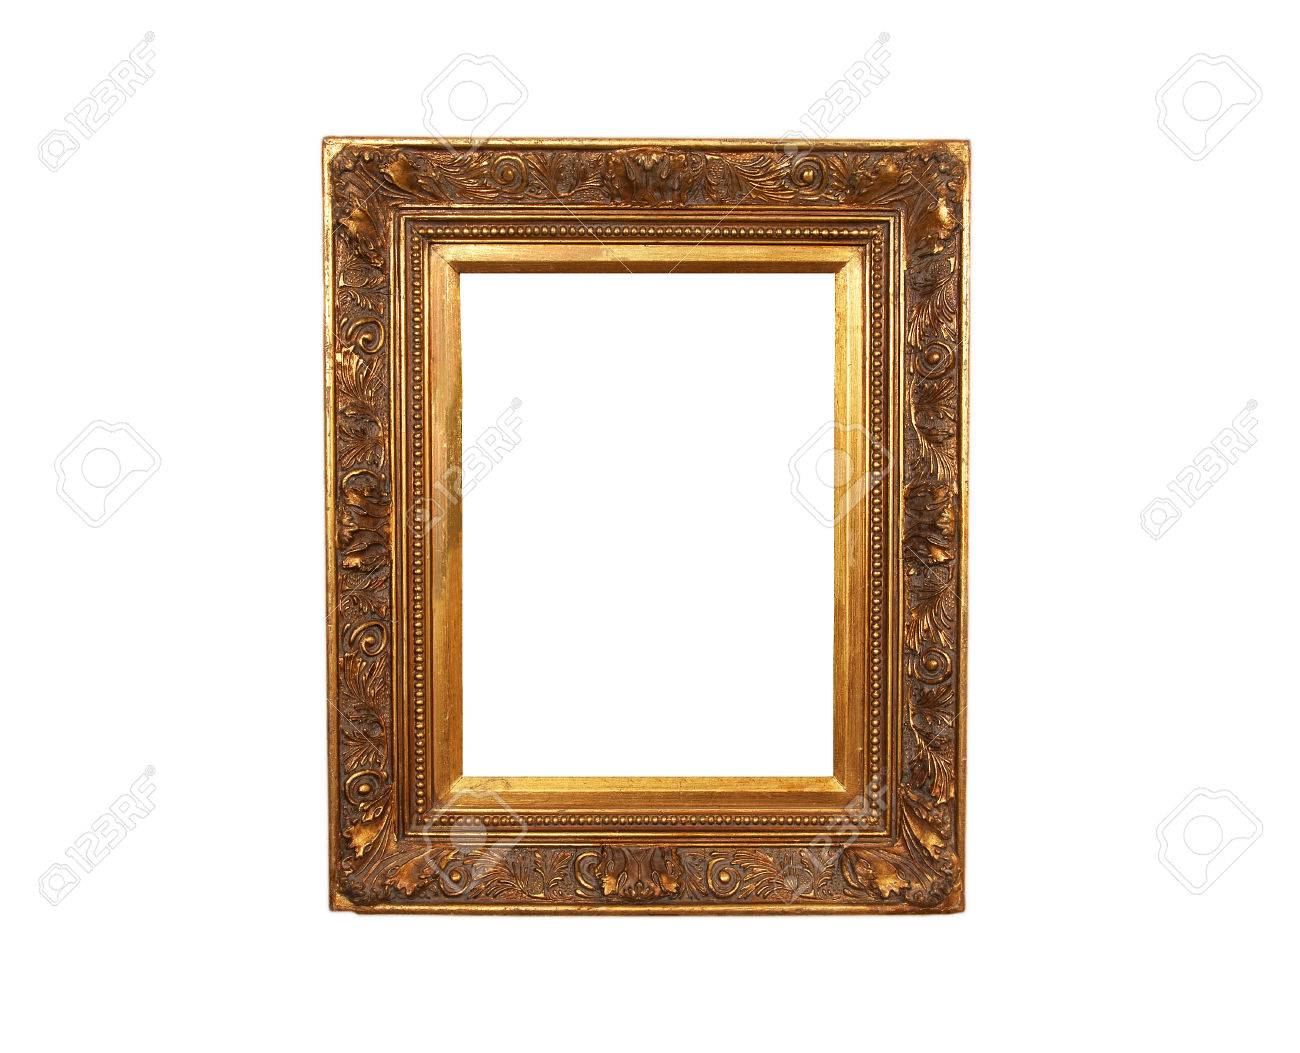 An old french wood frame with rich plaster engravings and gold painted. - 43271174